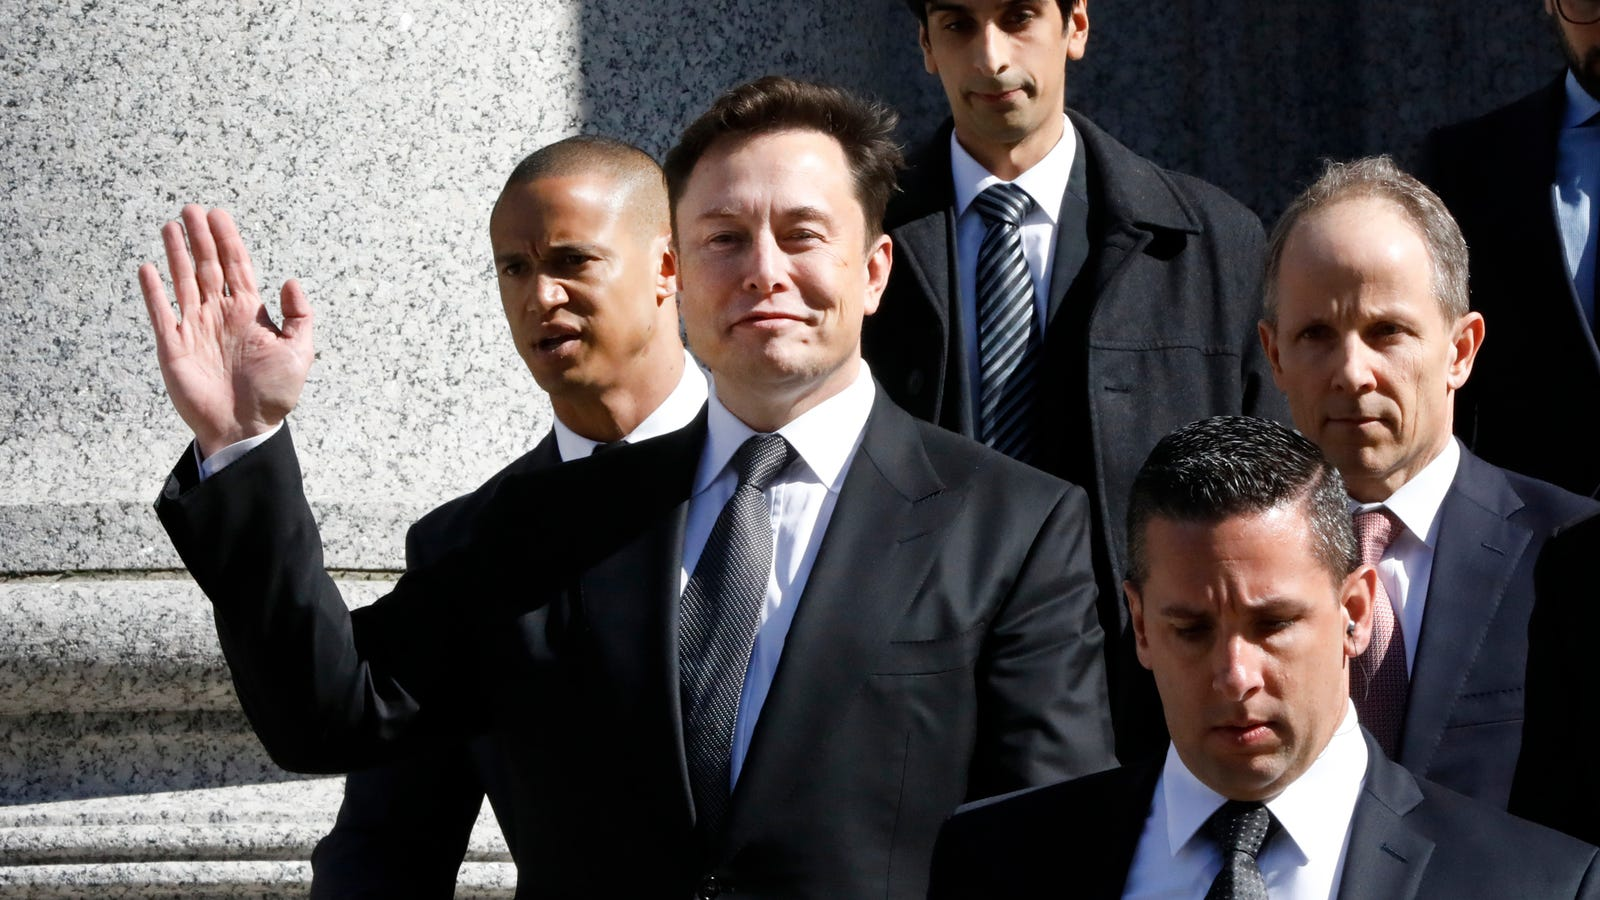 Elon Musk Reaches Deal With the SEC Requiring Tougher Oversight of His Bad Tweets